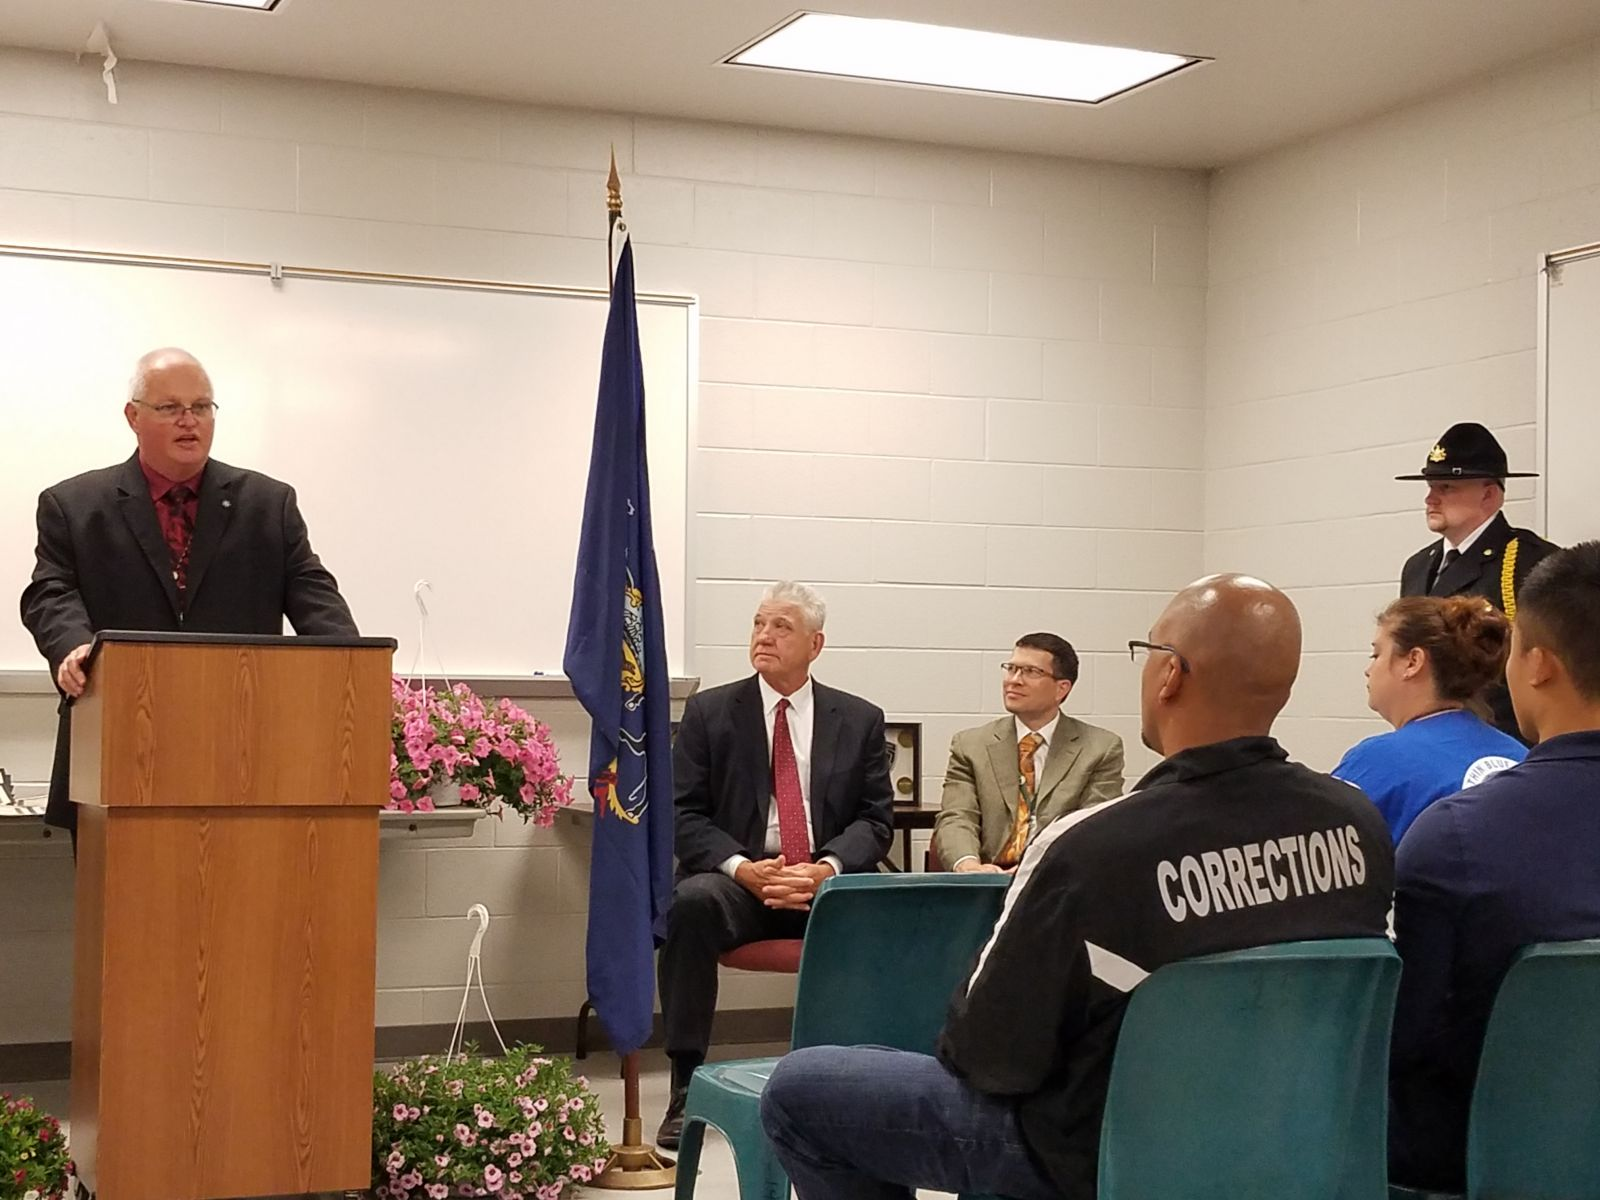 Warden Bill Bechtold addresses Correction officers and employees at the Corrections Officers and Employees Apprecitation Week celebration and service.